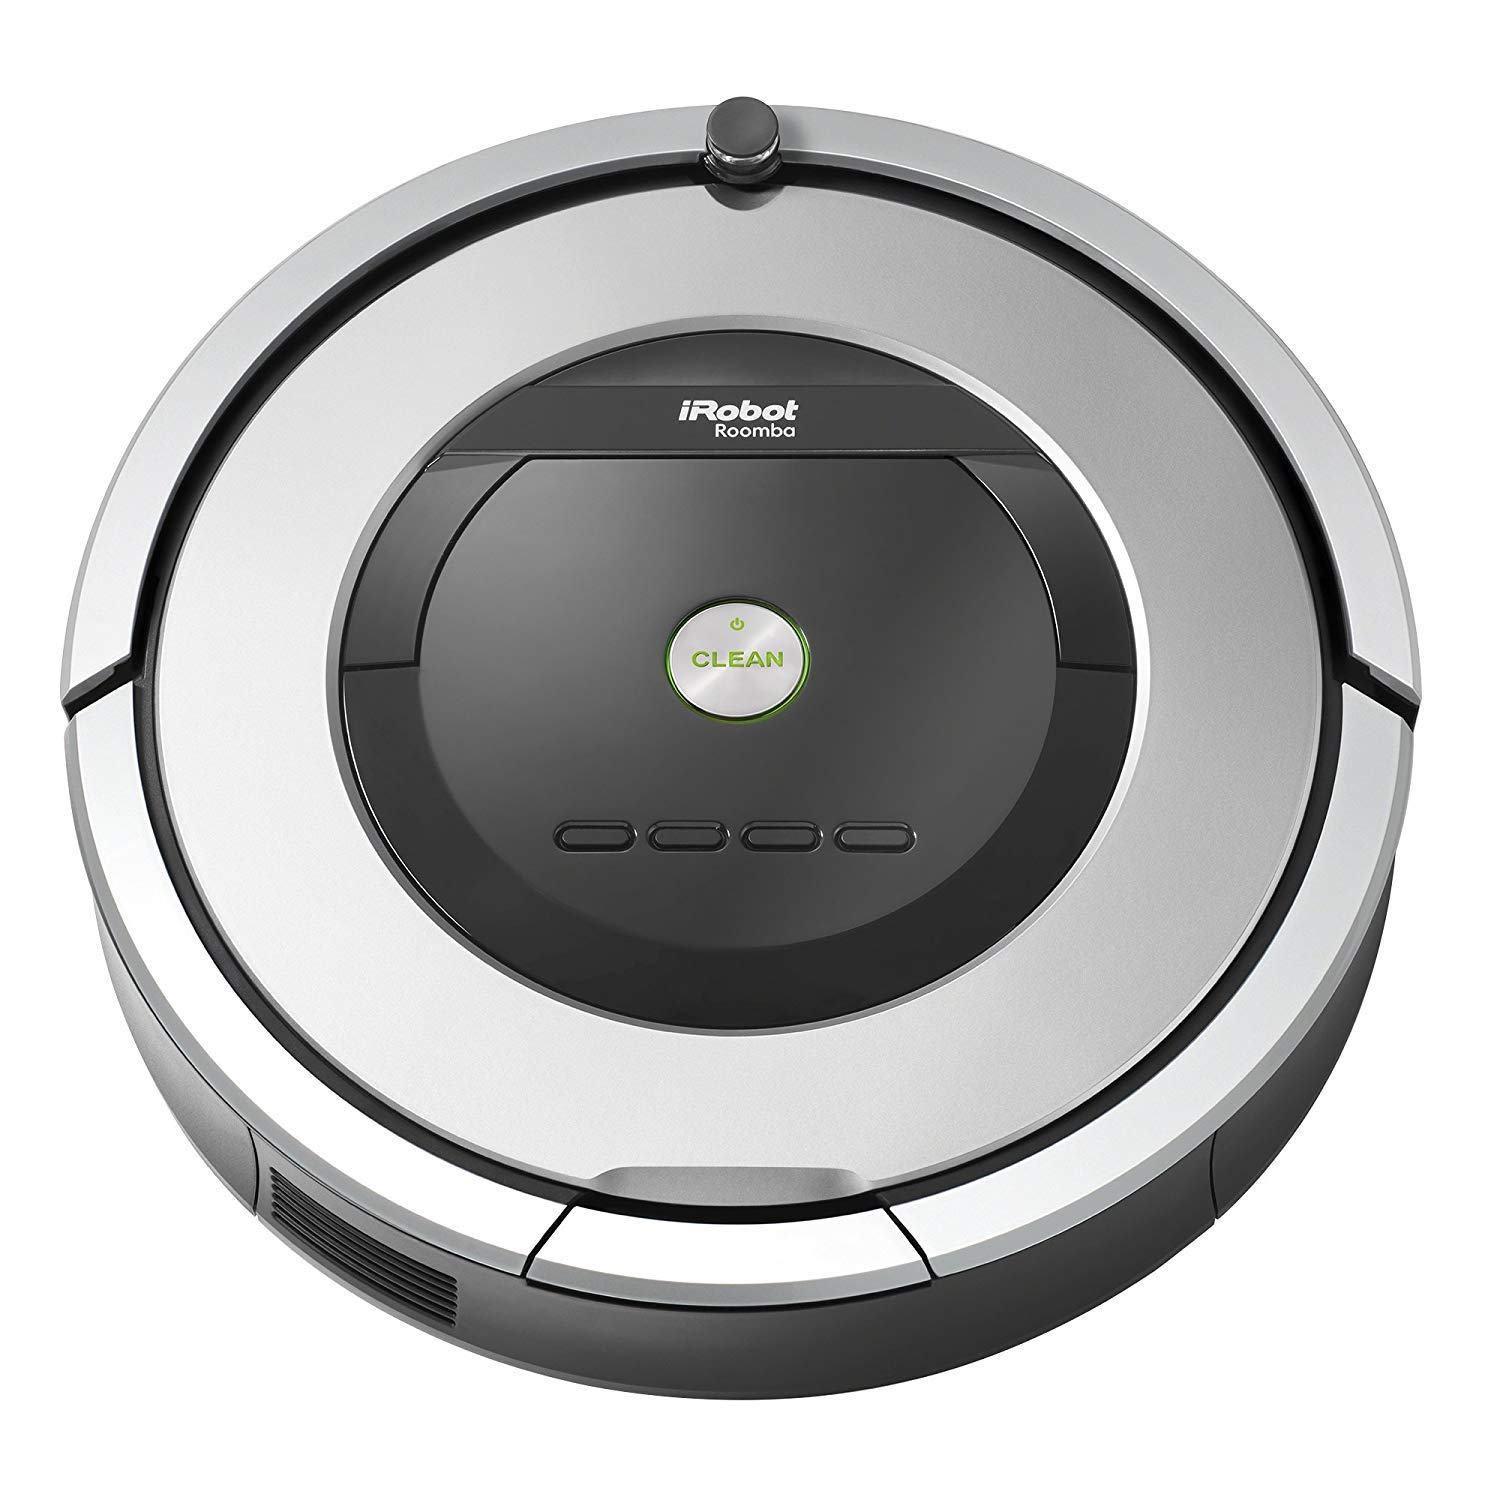 iRobot Roomba 860 Robotic Vacuum with Virtual Wall Barrier and Scheduling Feature (Certified Refurbished)